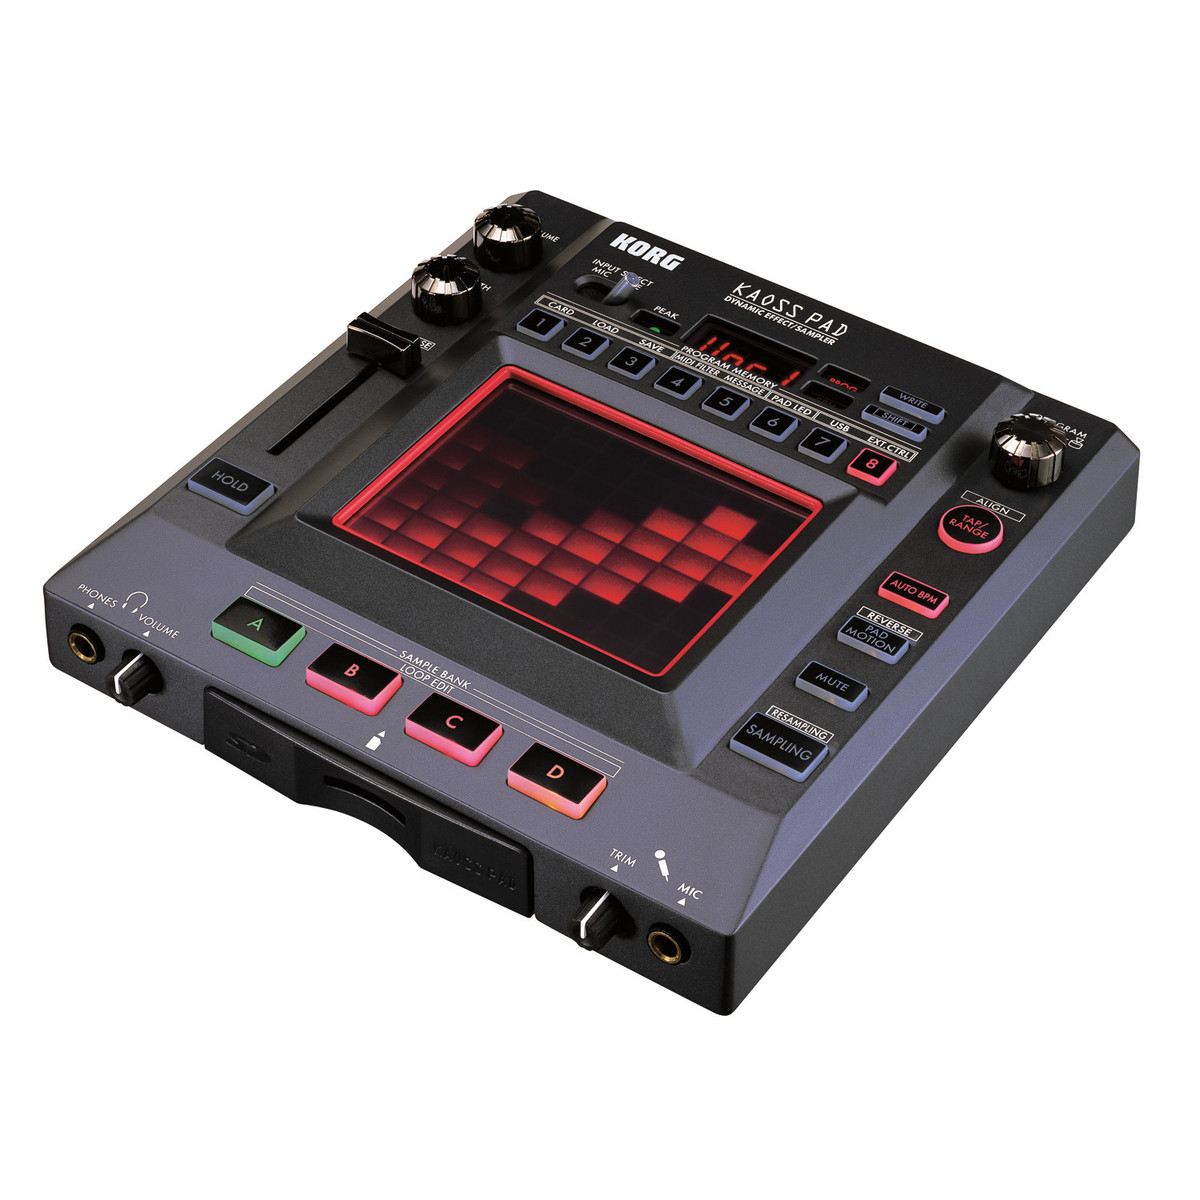 Image of Korg Kaoss Pad KP3+ Dynamic Effects/Sampler